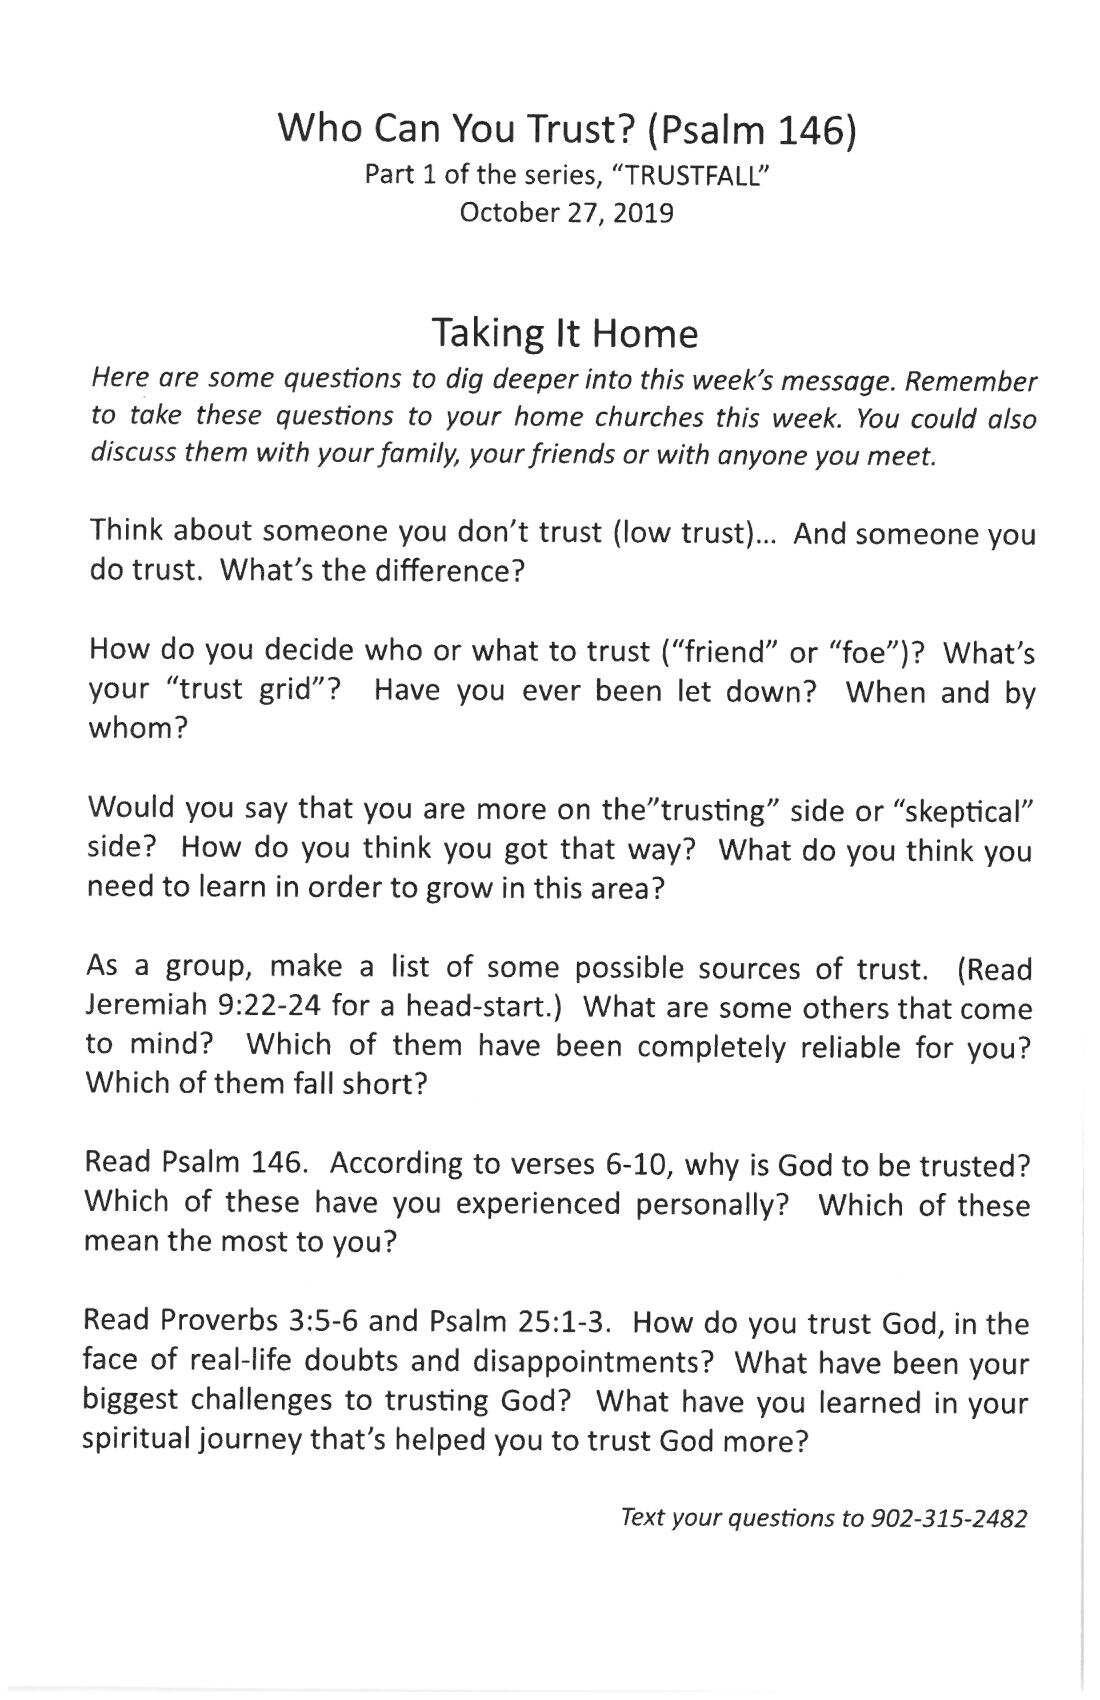 Who Can You Trust Psalm 146.jpg